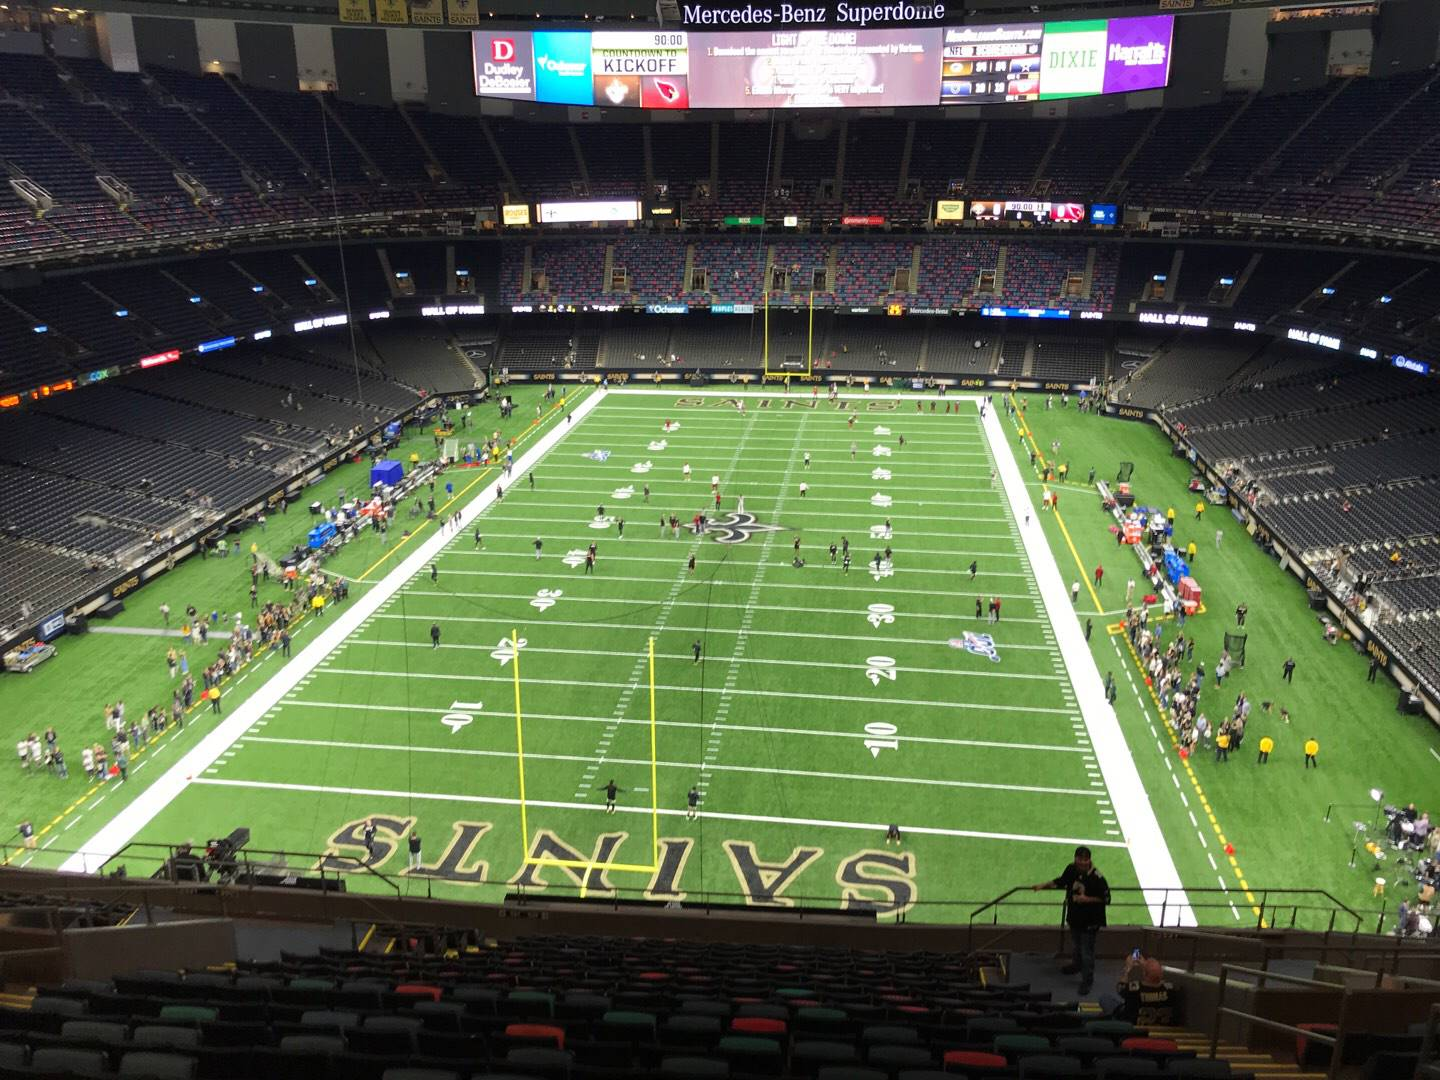 Mercedes-Benz Superdome Section 626 Row 17 Seat 7